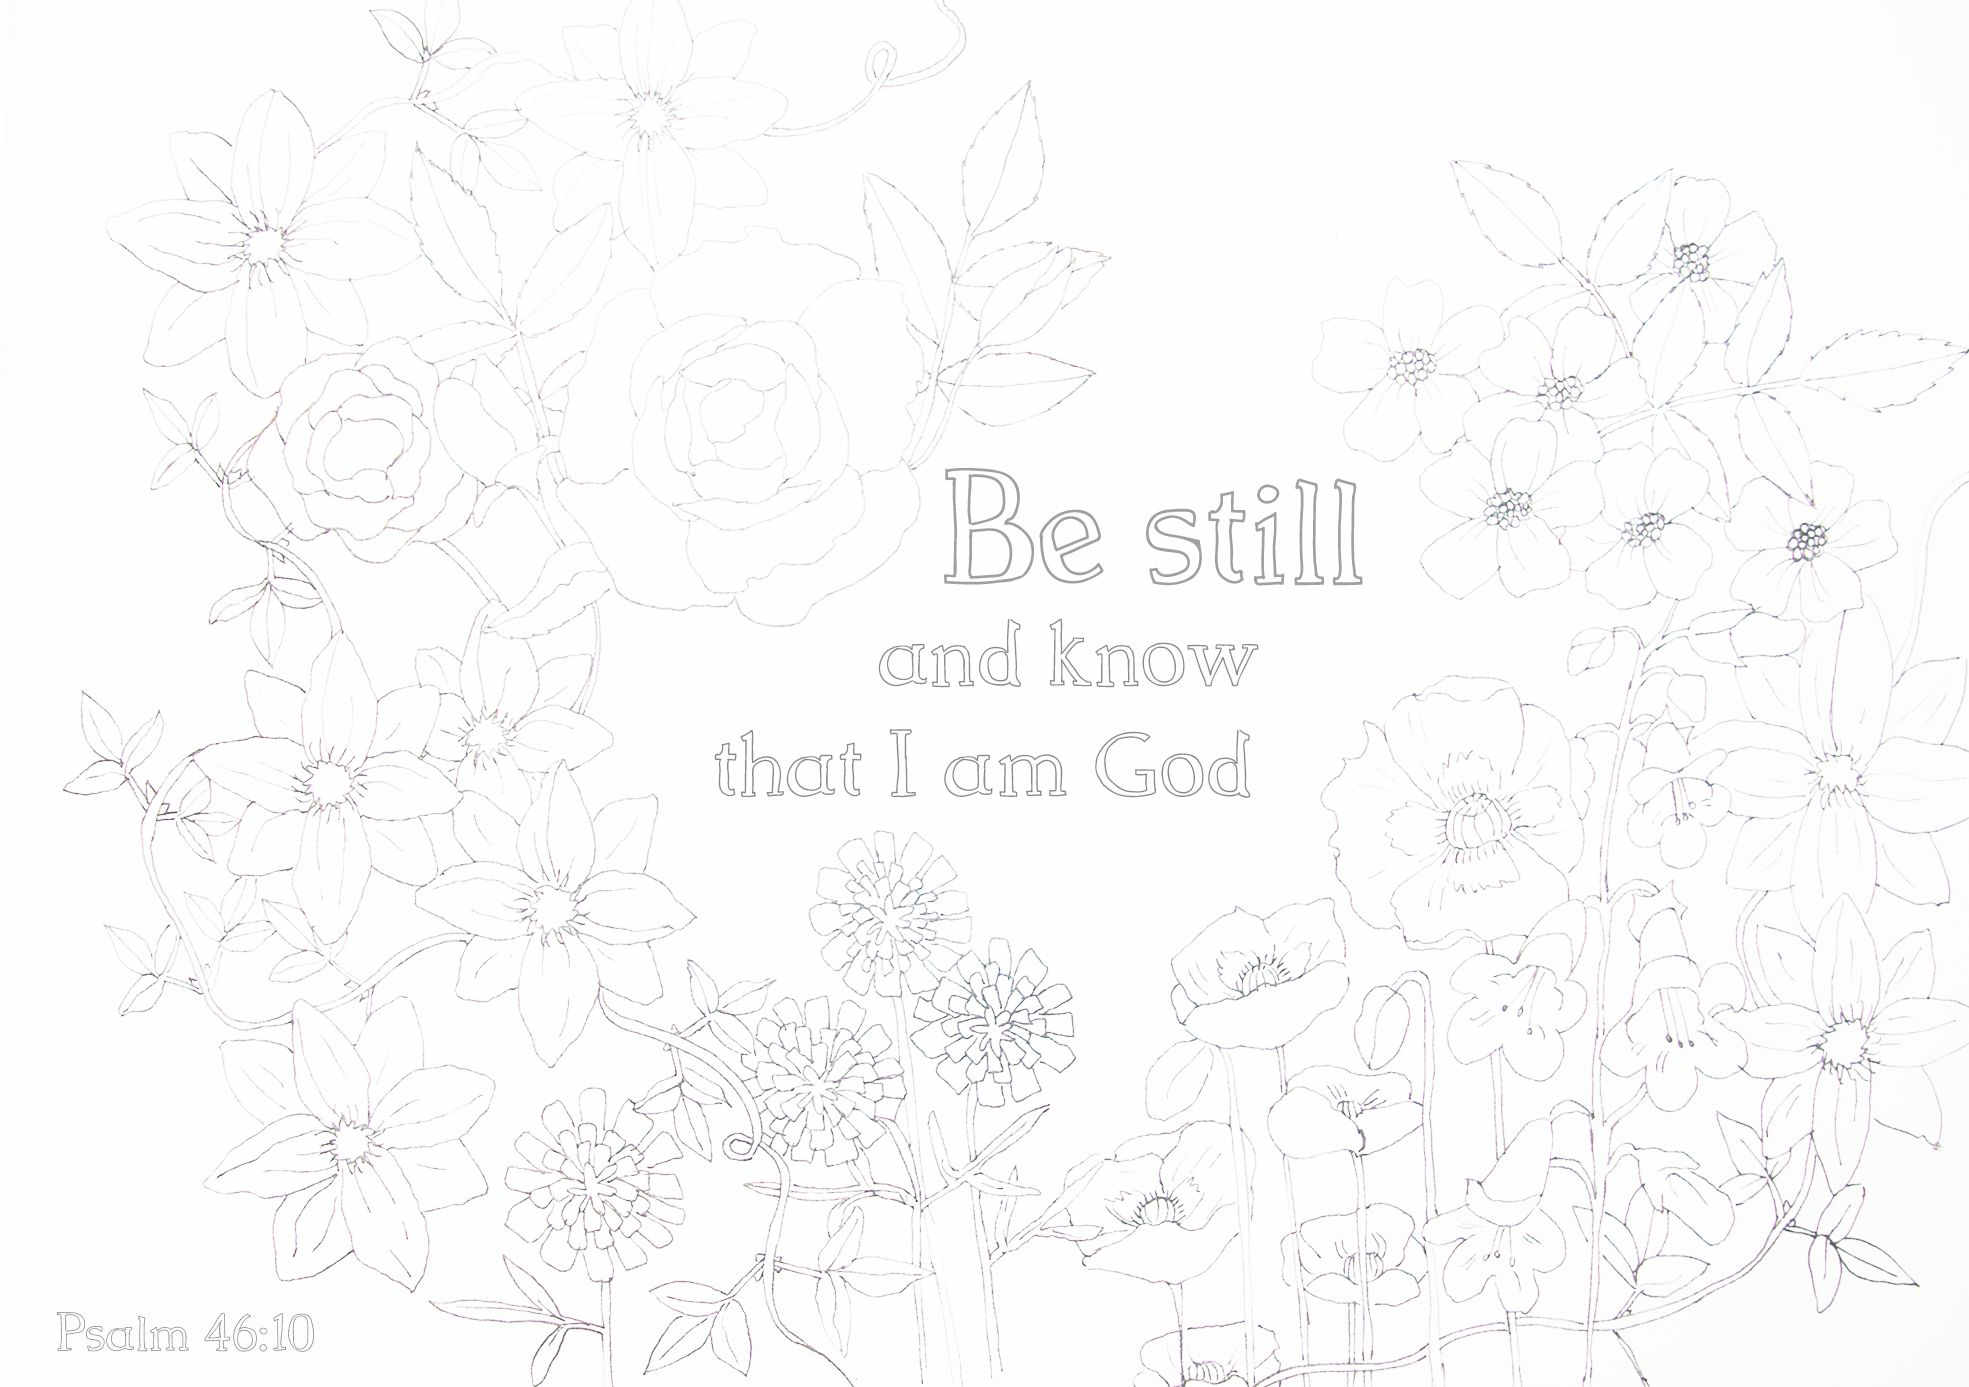 Printable Colouring Sheet Based On Psalm 46 10 Be Still